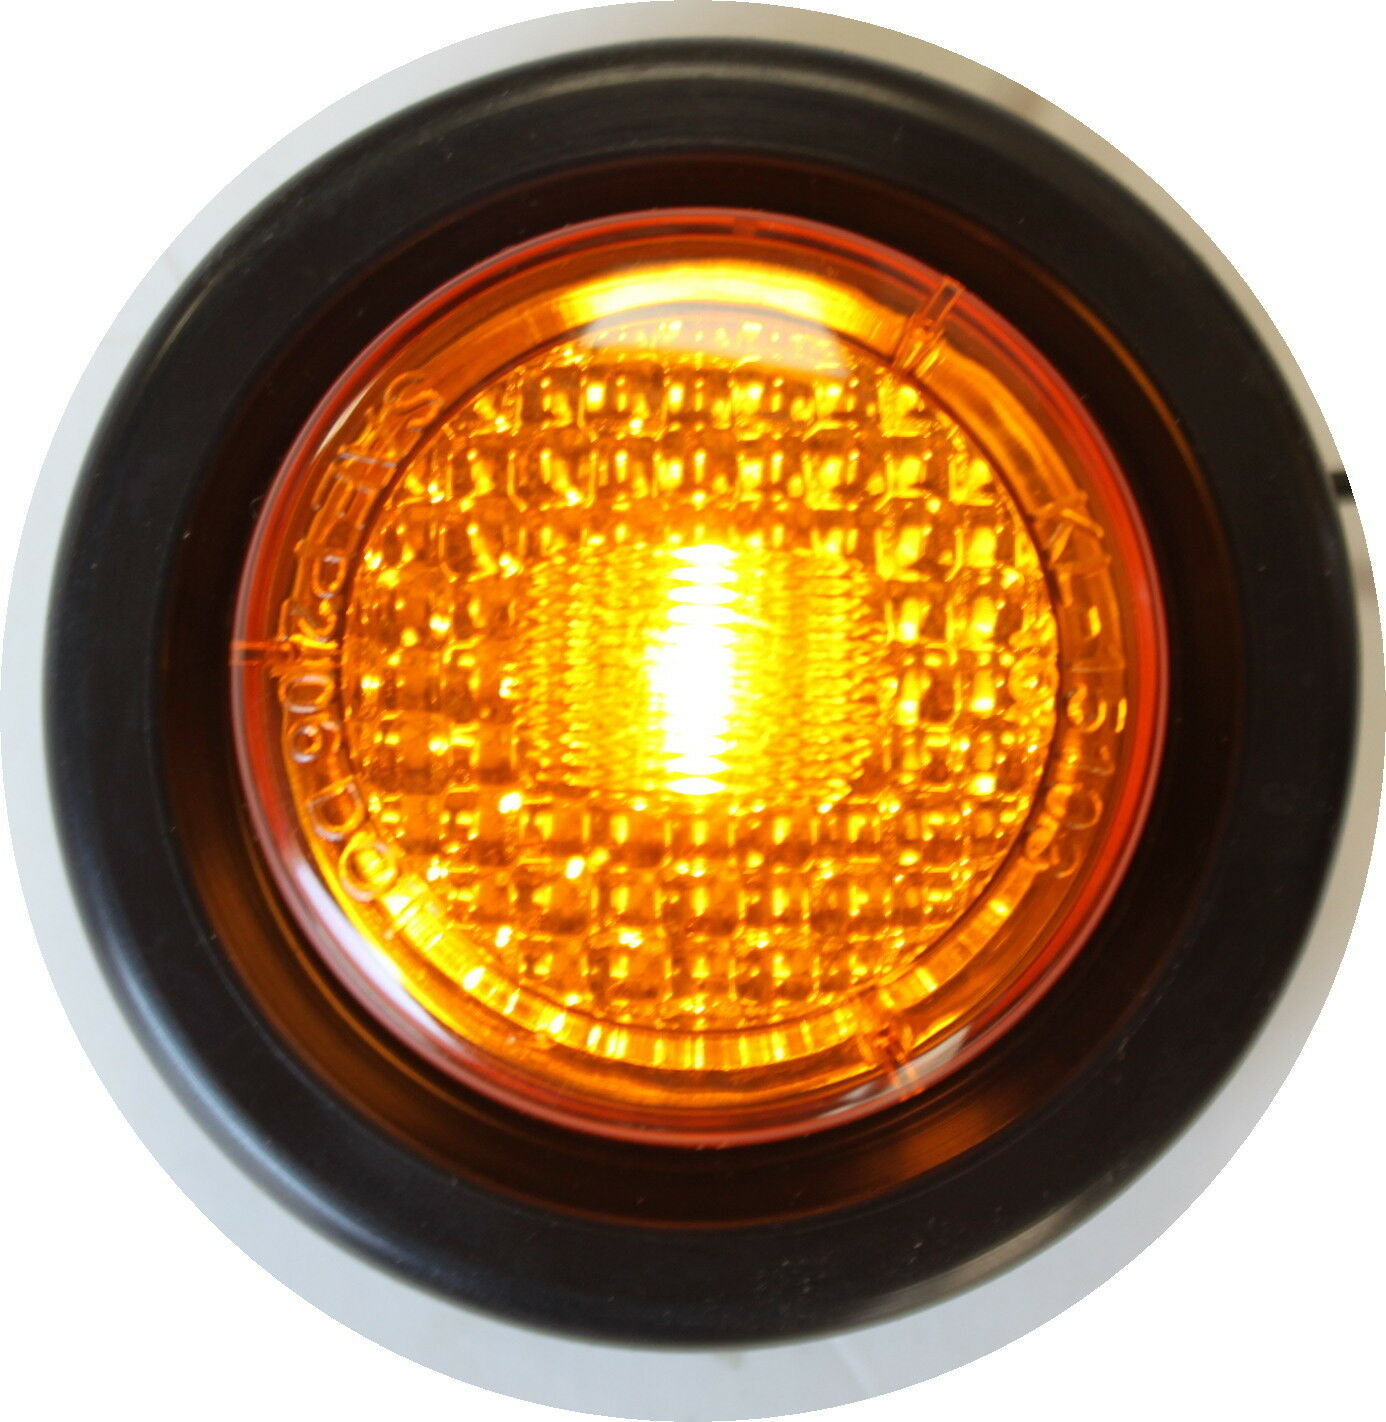 3 AMBER 3 RED NEW LED ROUND CLEARANCE SIDE MARKER TRUCK TRAIER LIGHT Grommet